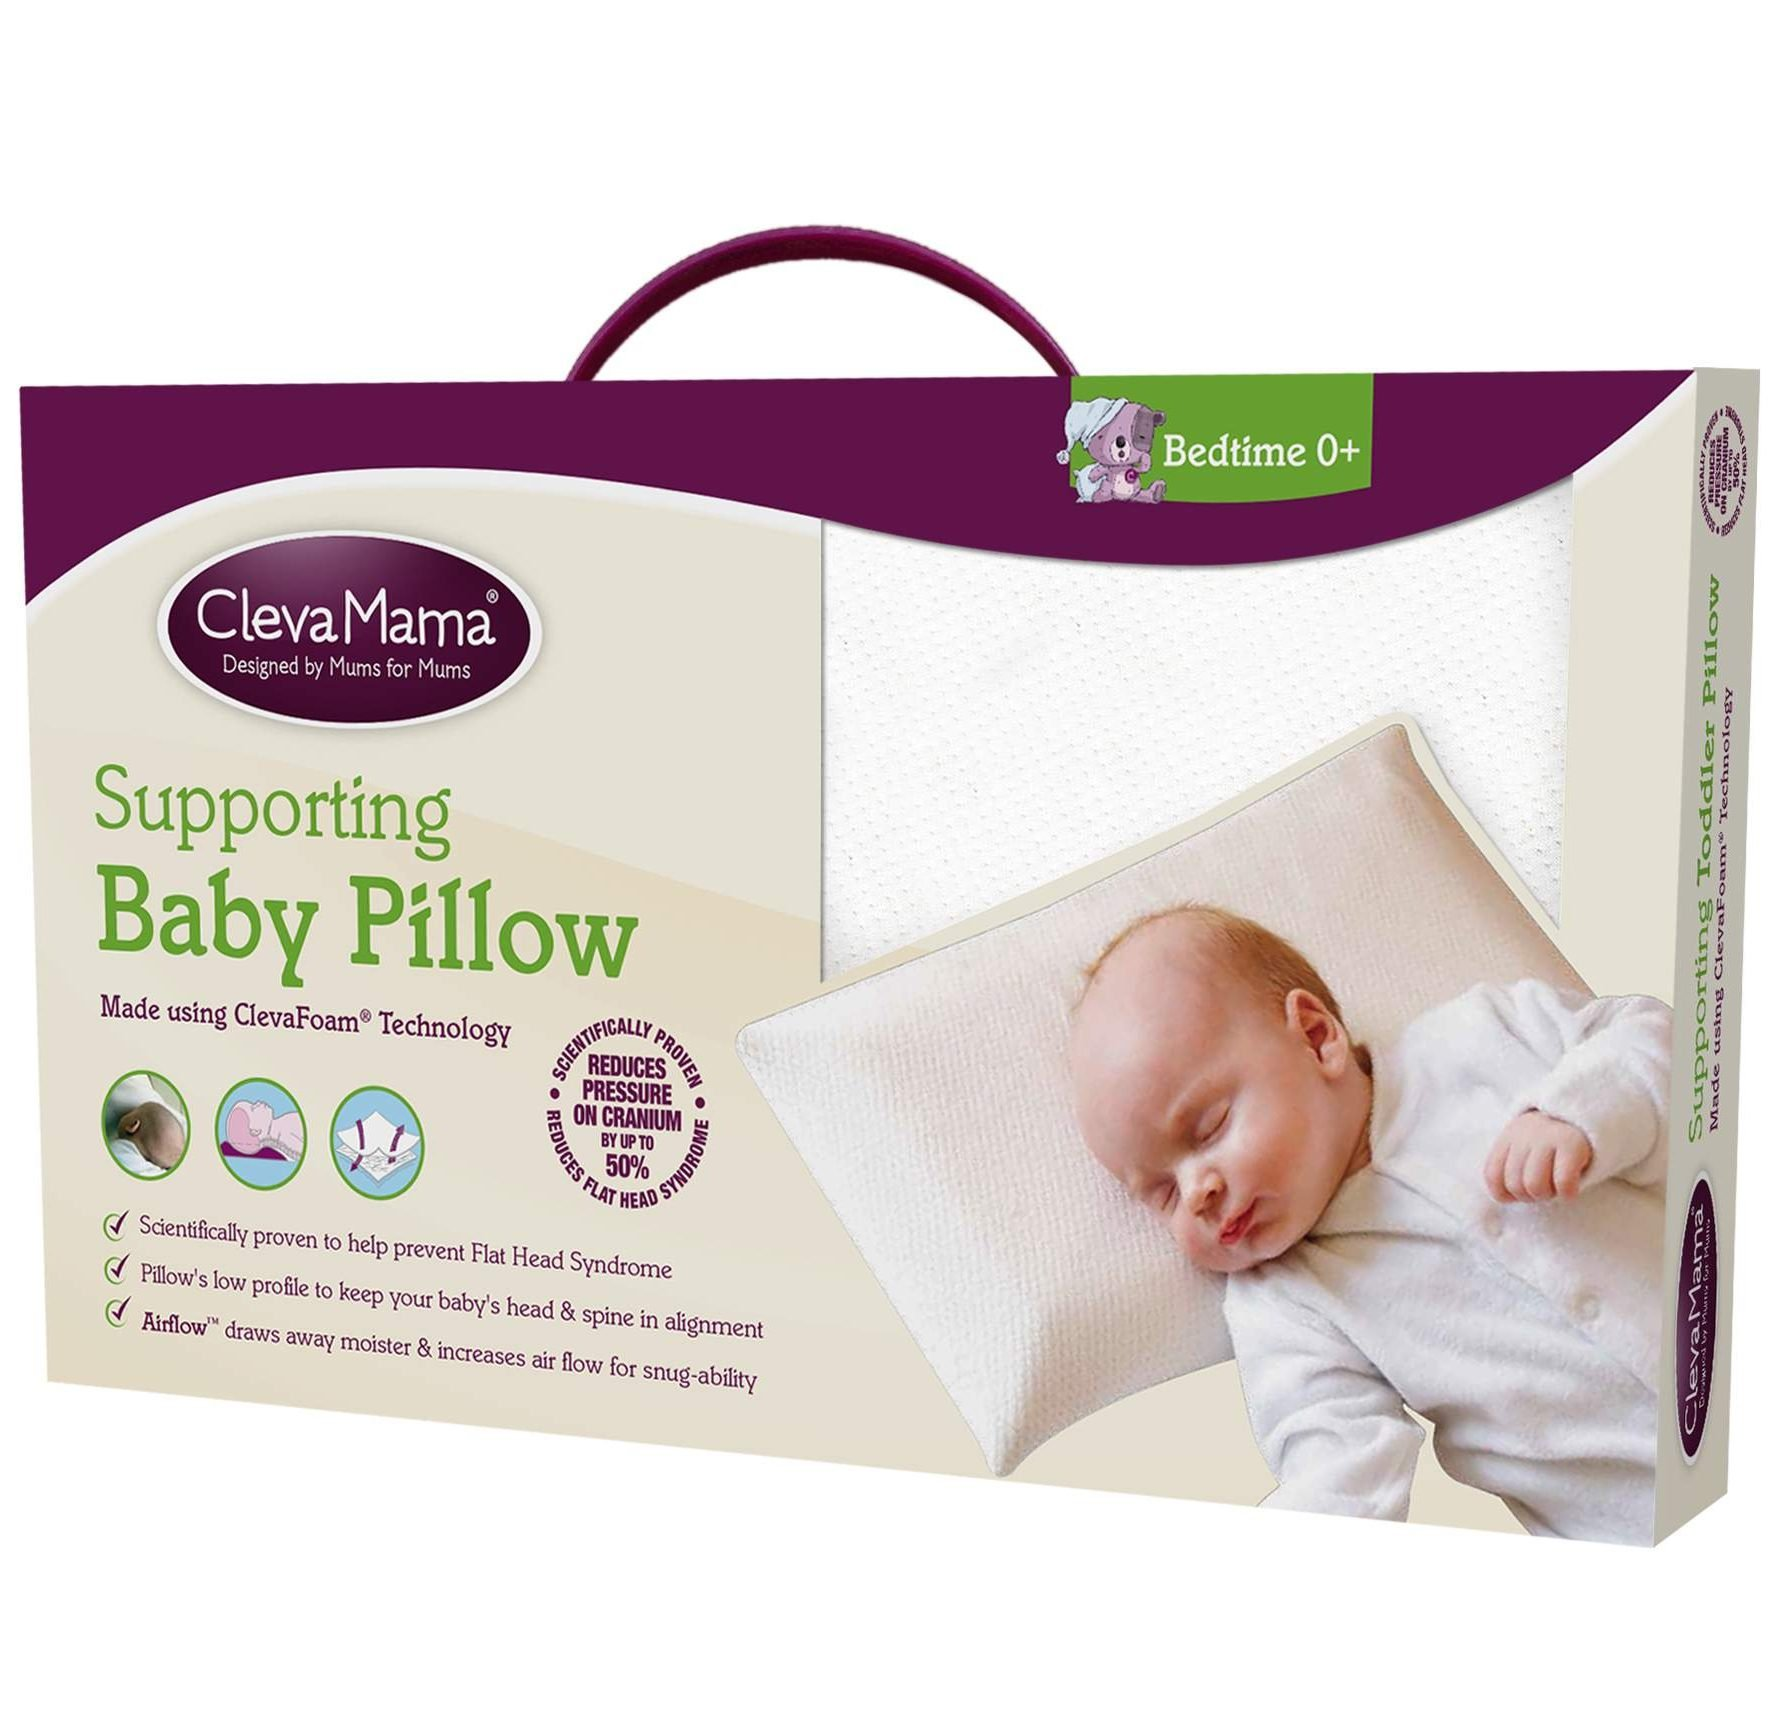 ClevaMama Cleva Foam Baby Pillow